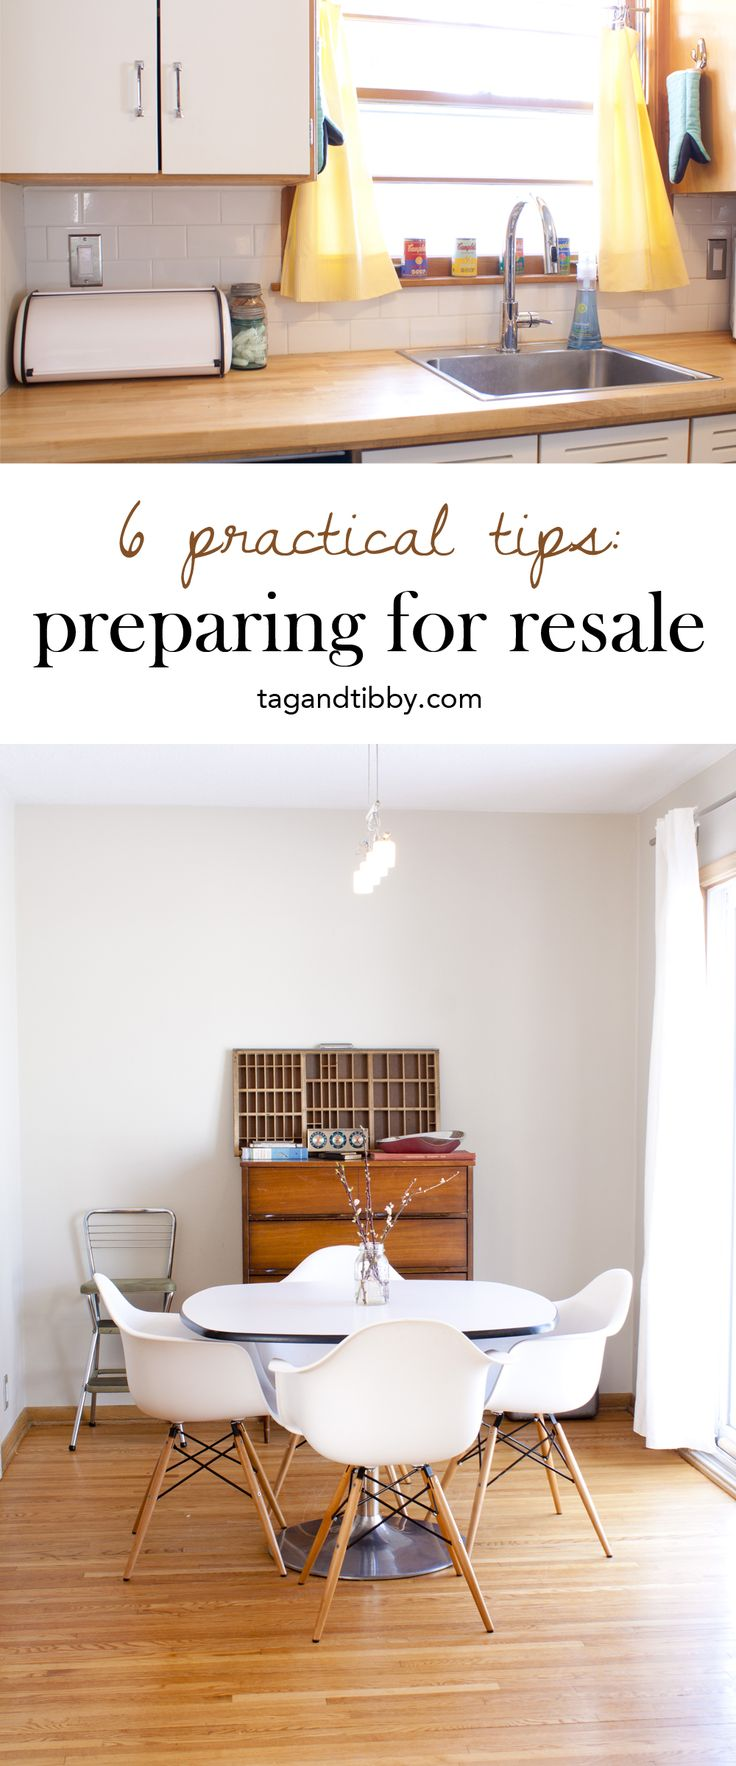 6 Practical Tips: Preparing for Resale — Tag & Tibby